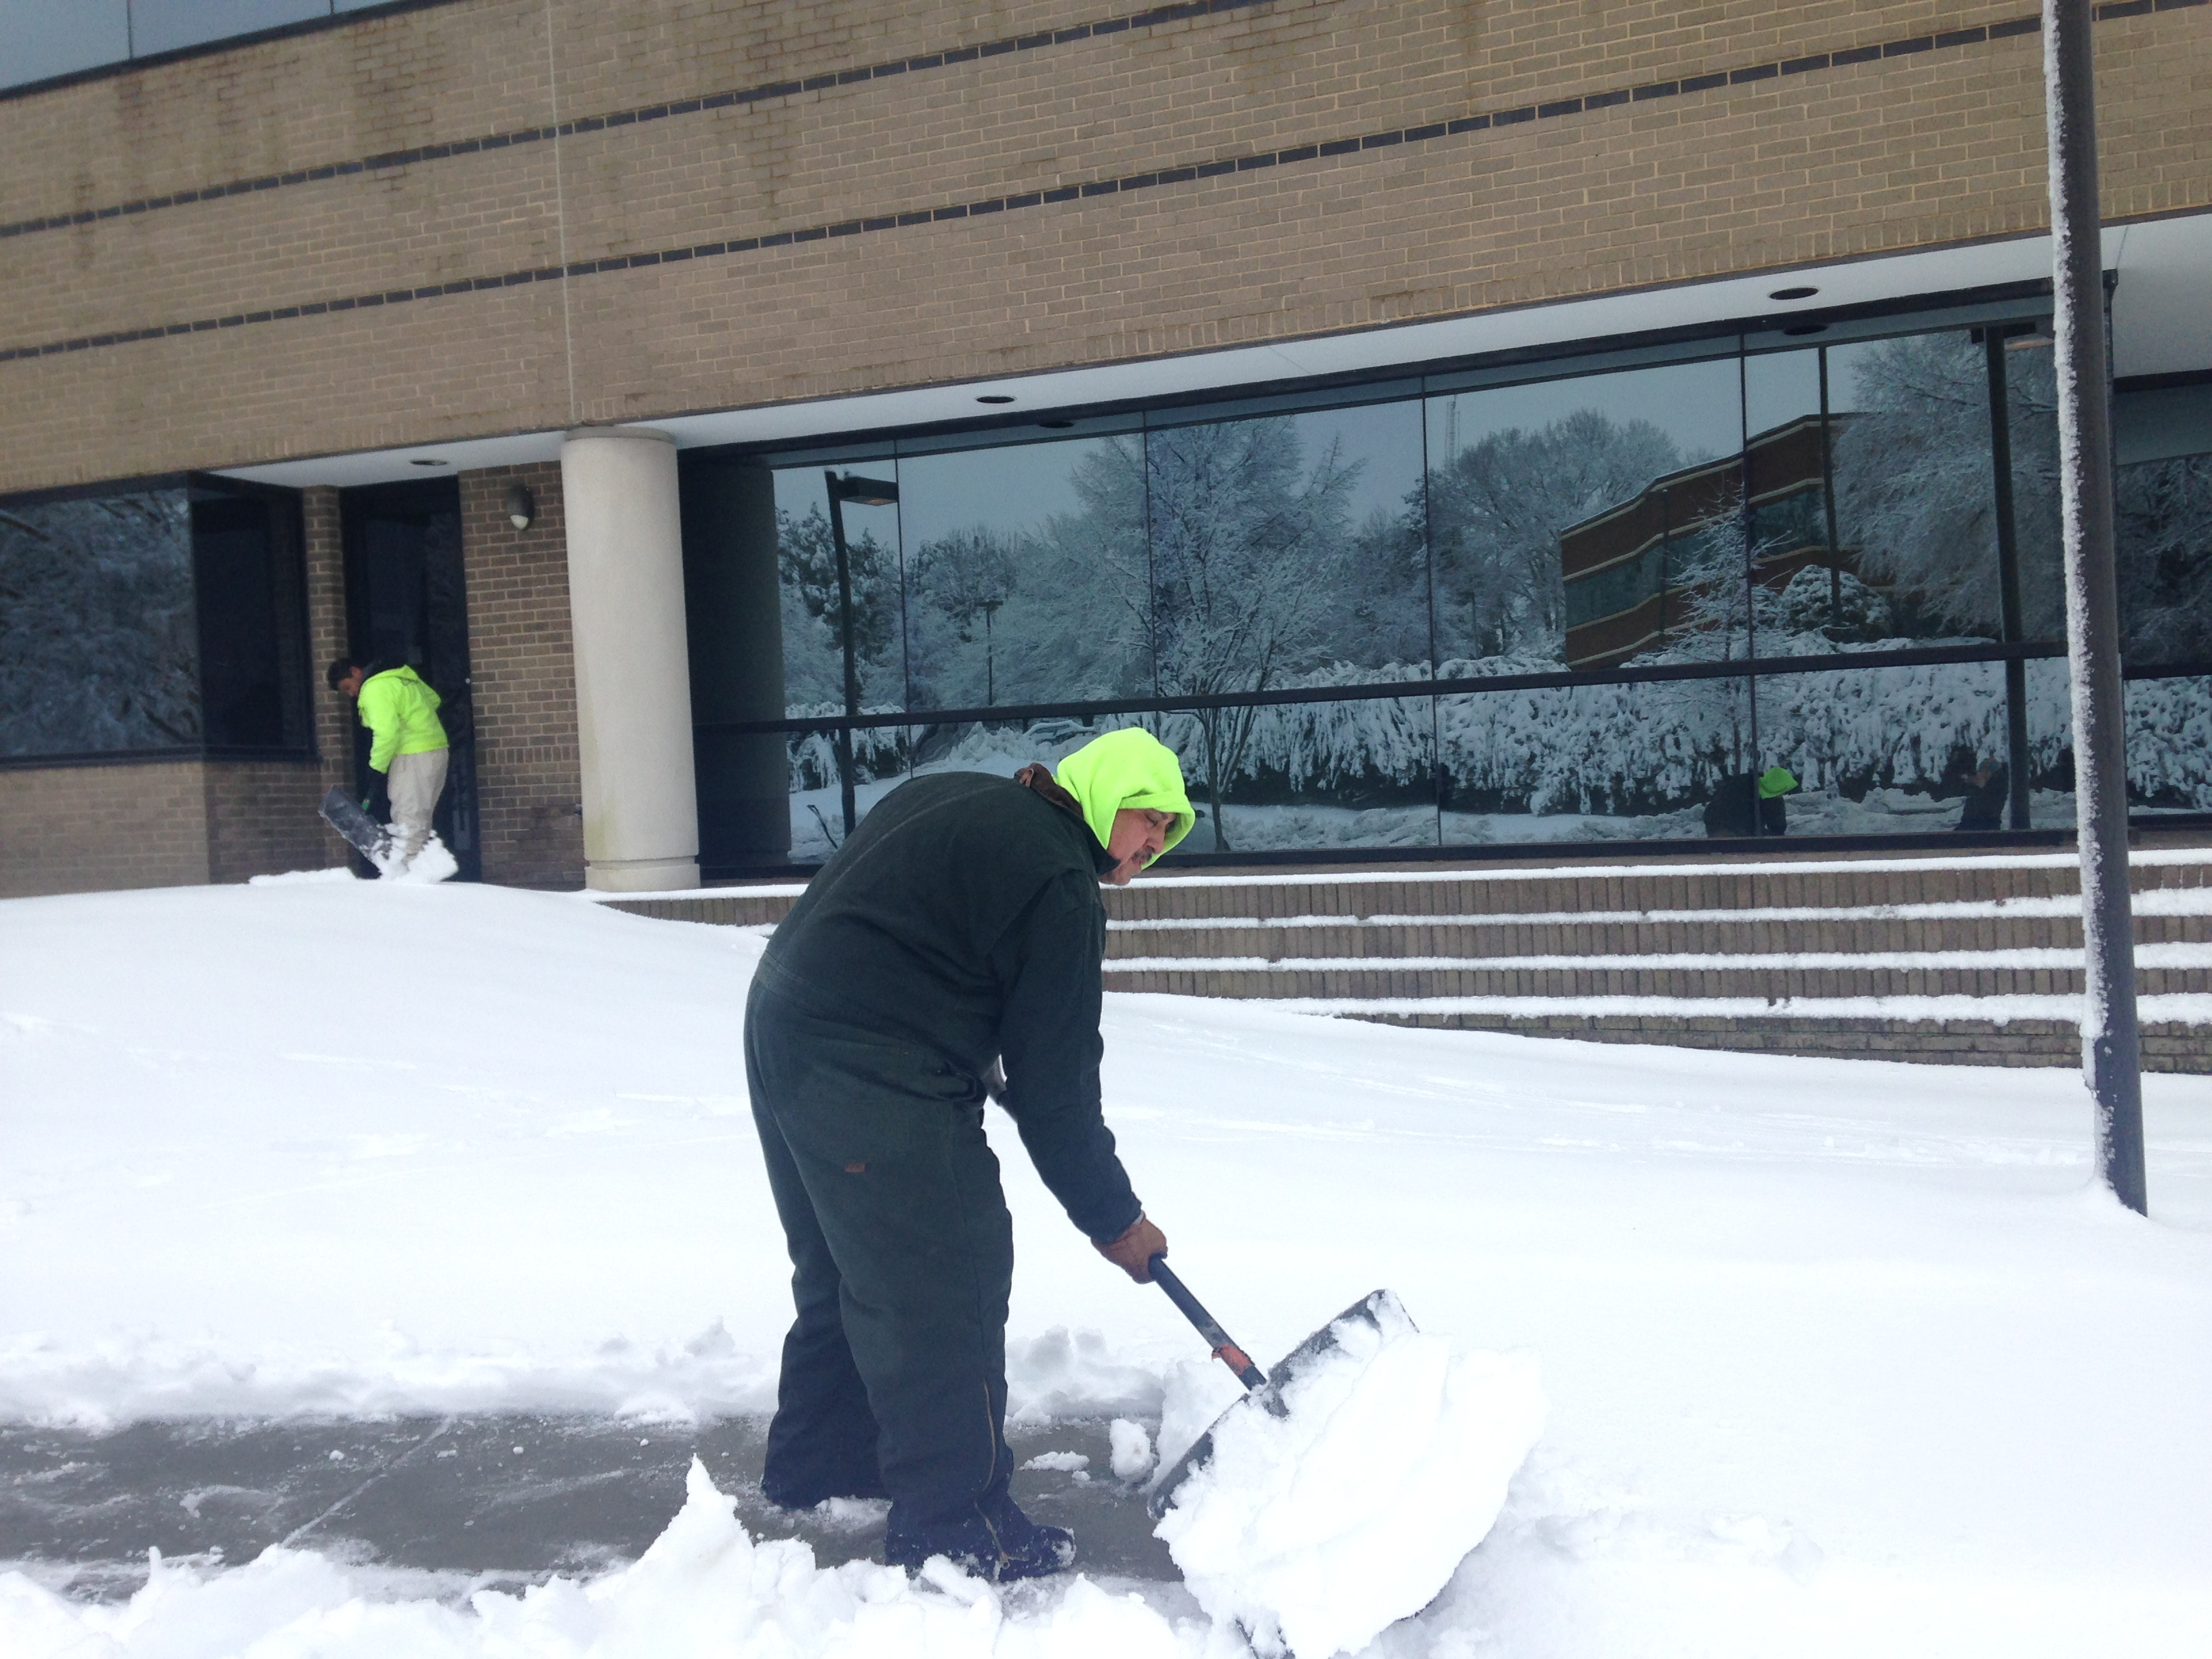 Snow and Ice management team shoveling snow